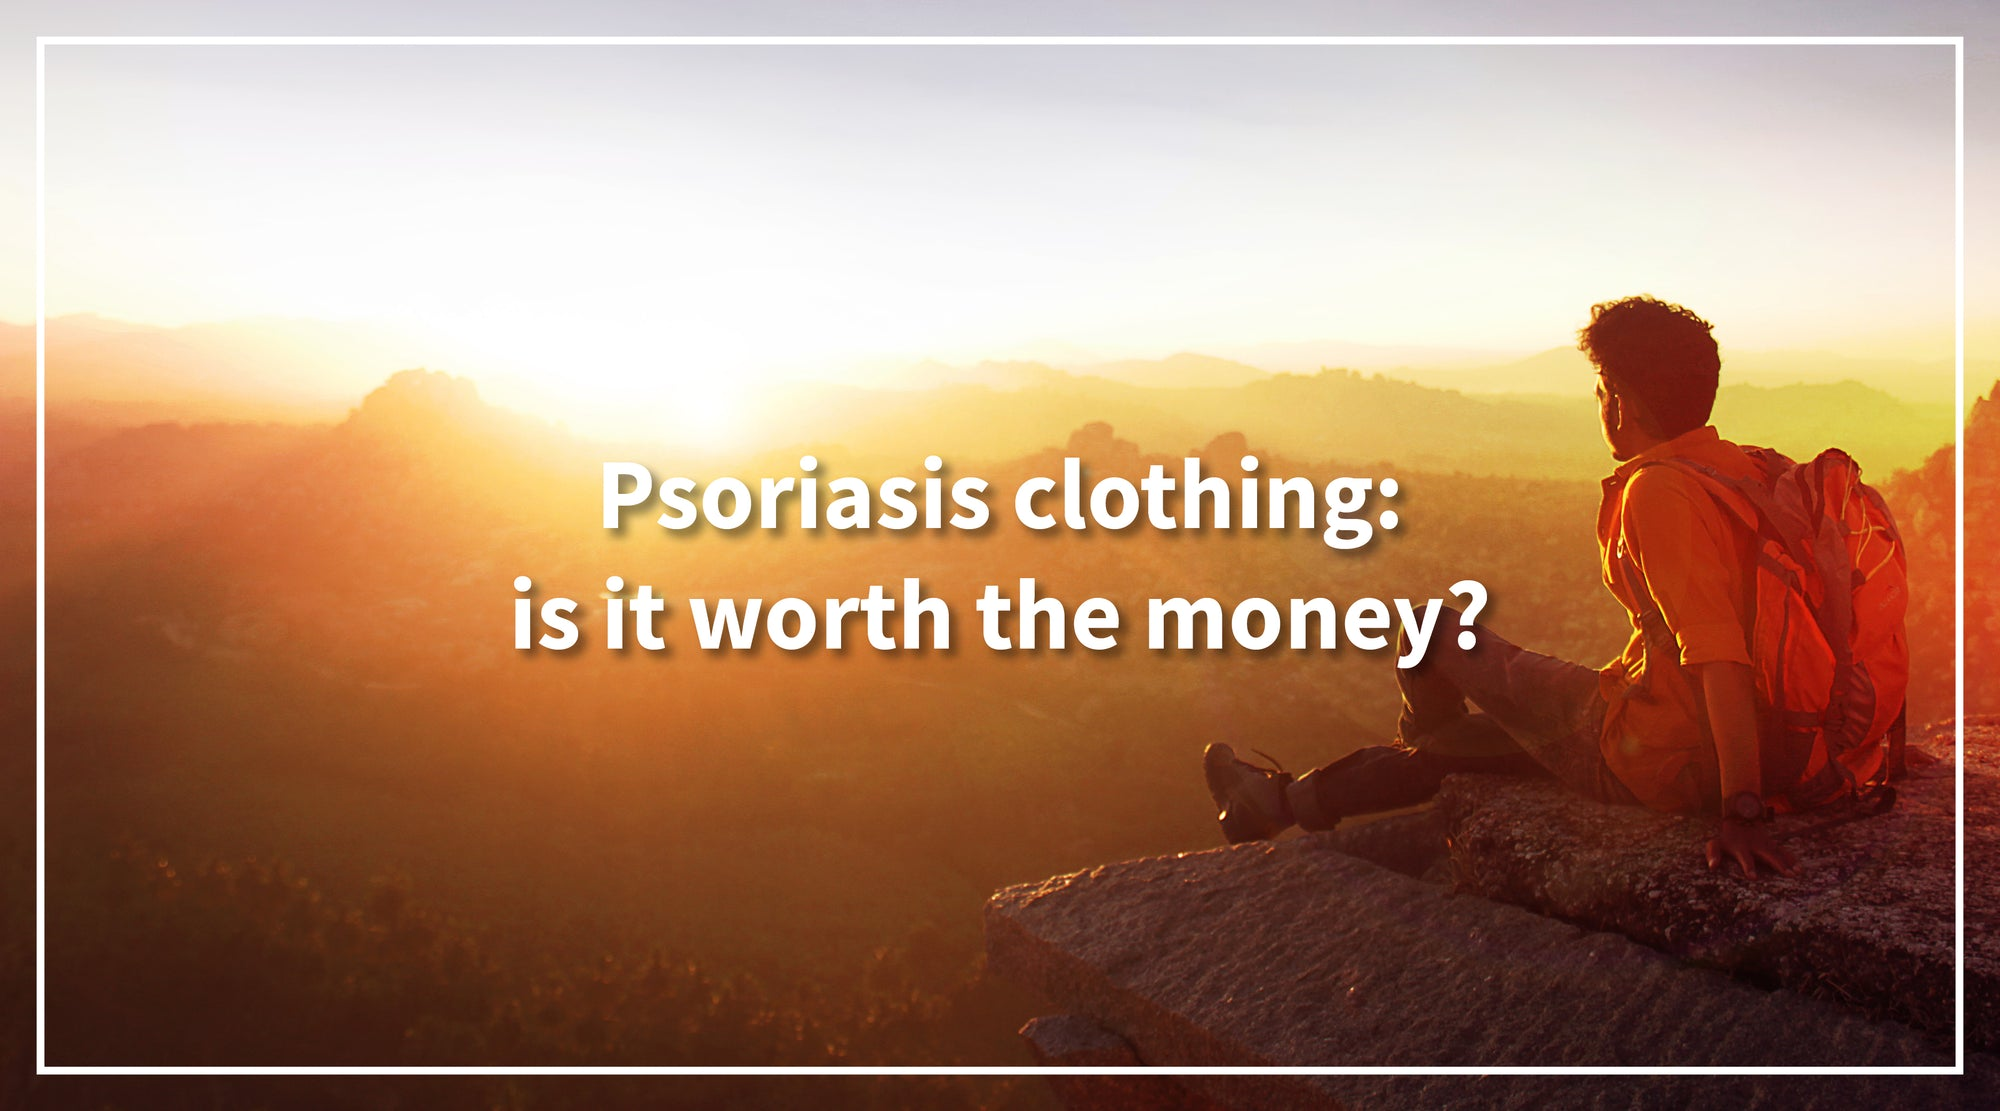 Solbari blog: Psoriasis clothing: is it worth the money?